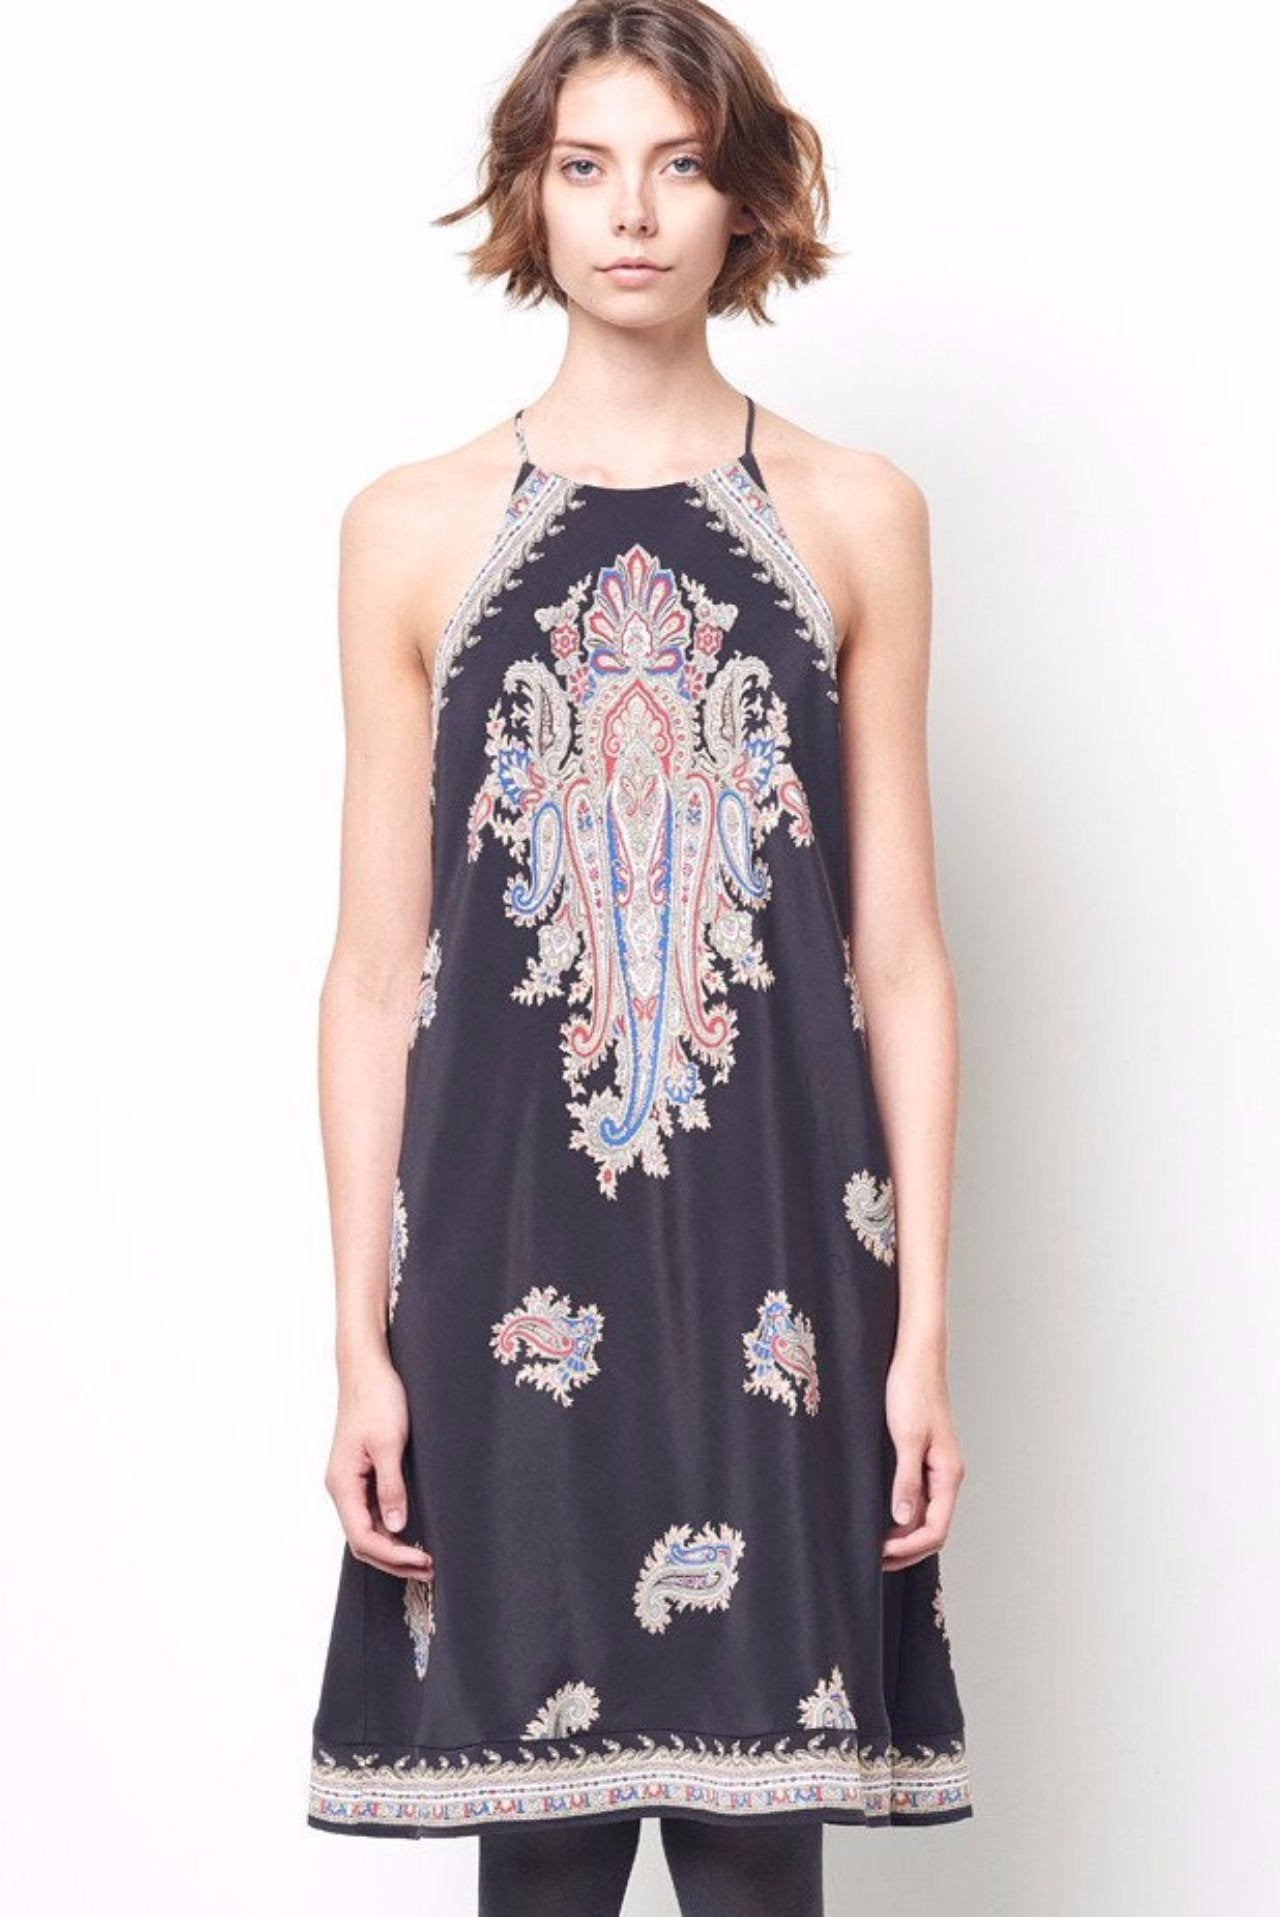 ZOLA Paisley Racer Back Slip Dress